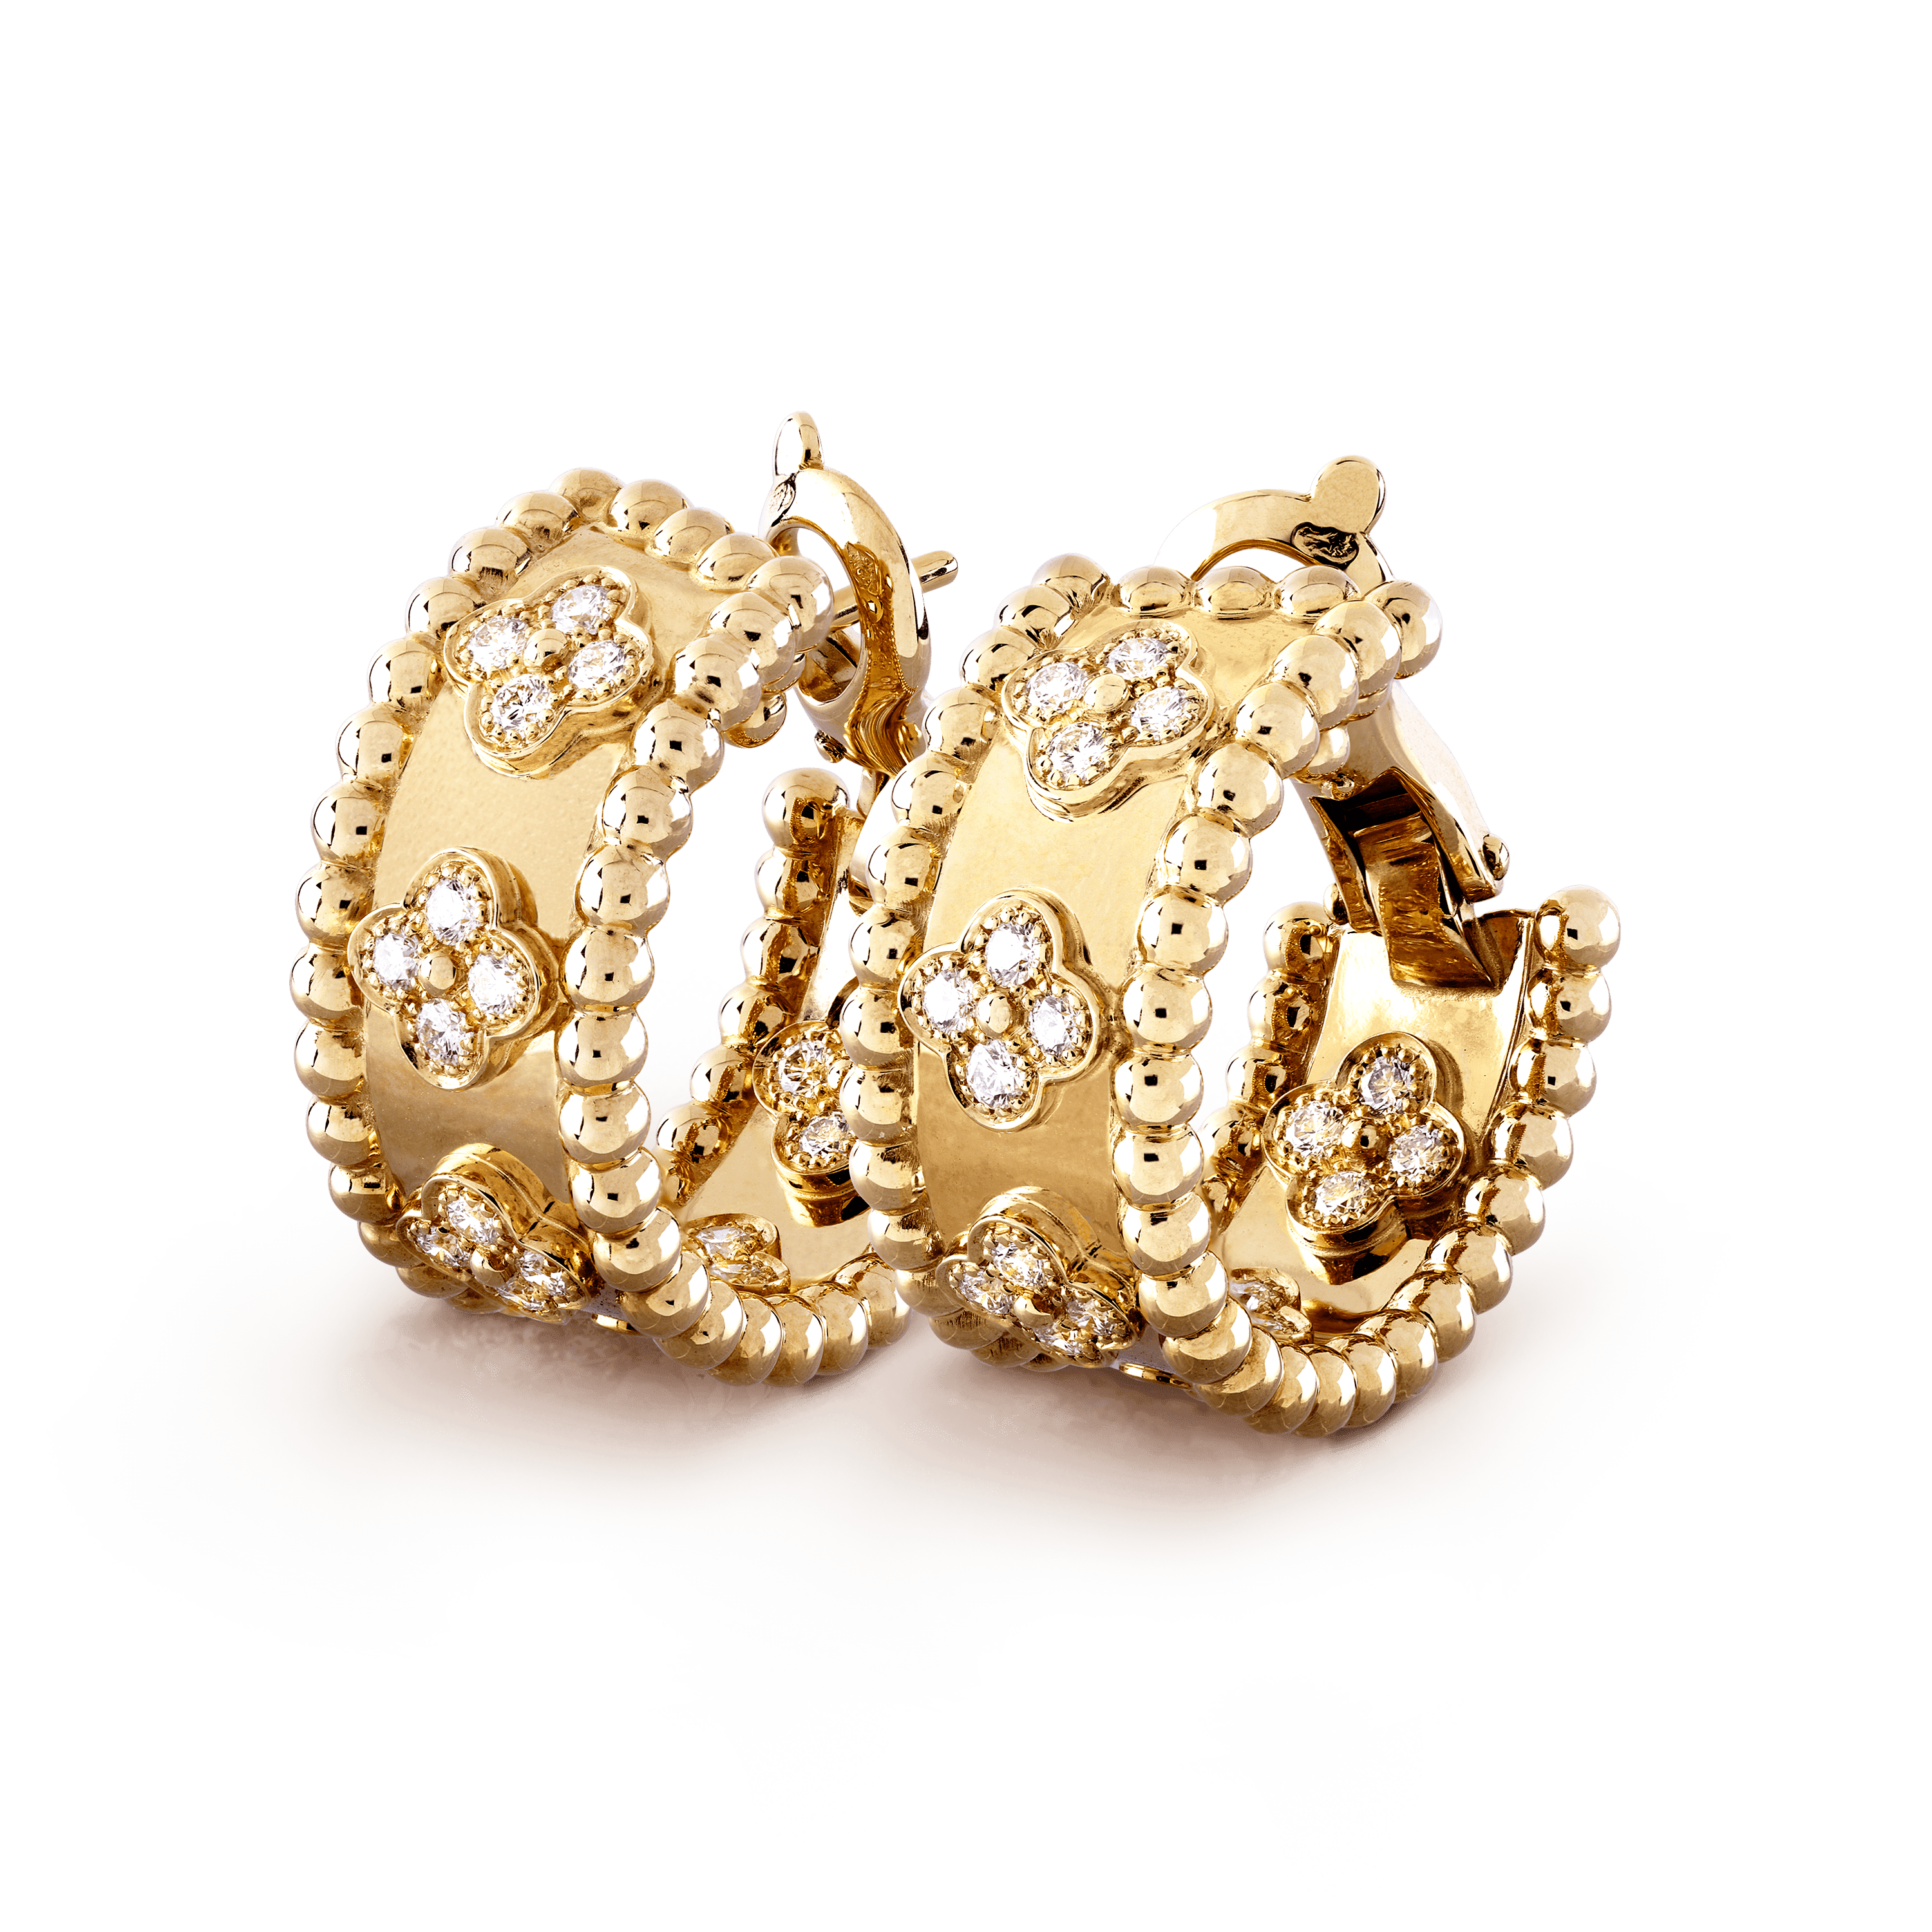 Perlée clovers hoop earrings, - 3|4 View - VCARO3YE00 - Van Cleef & Arpels